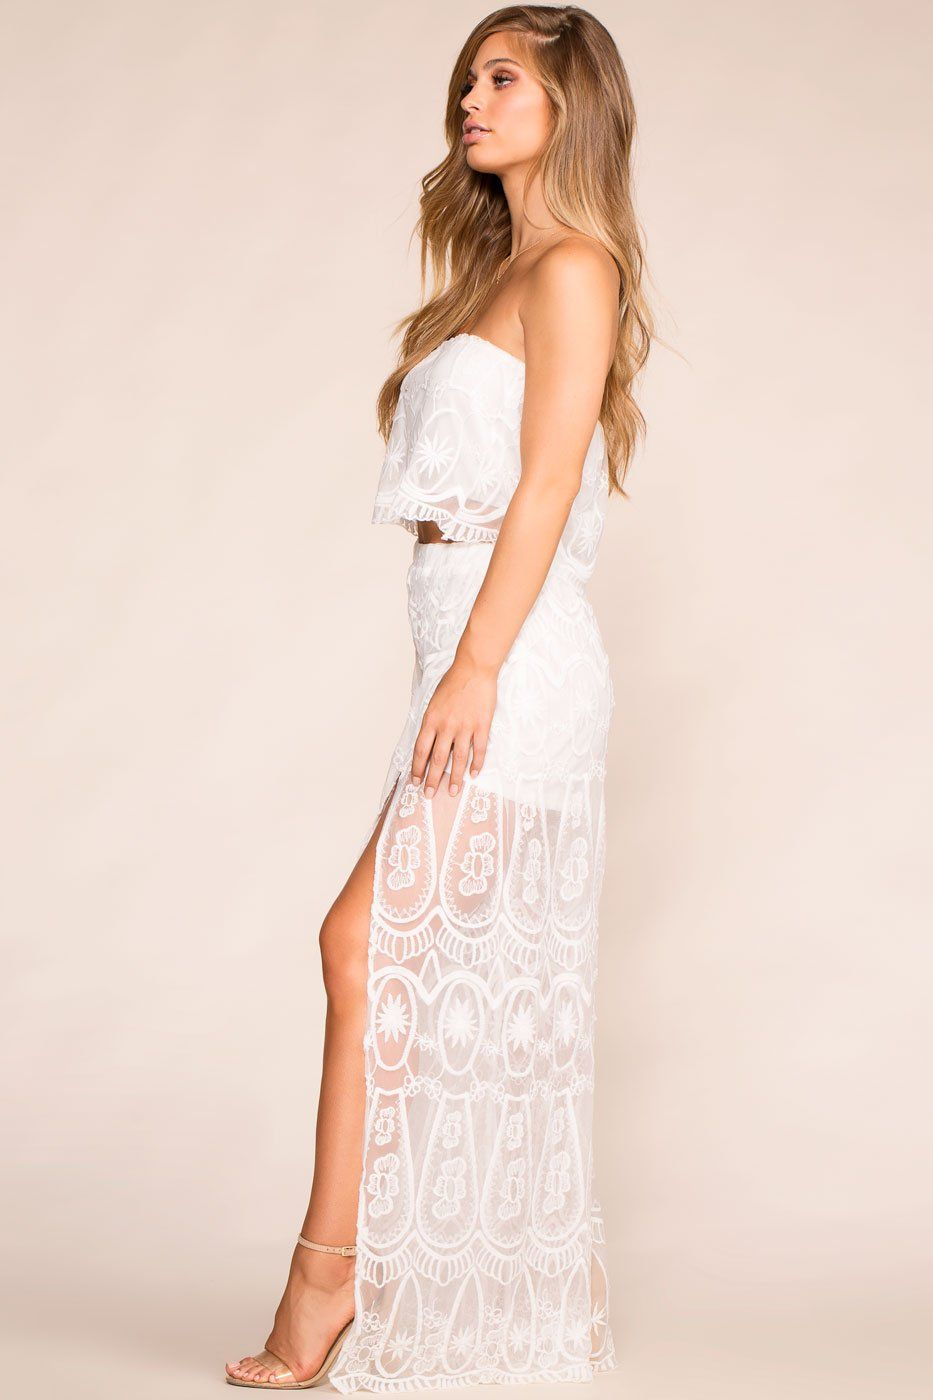 440d1fb640a ... Boho White Lace Flowy Pants ...